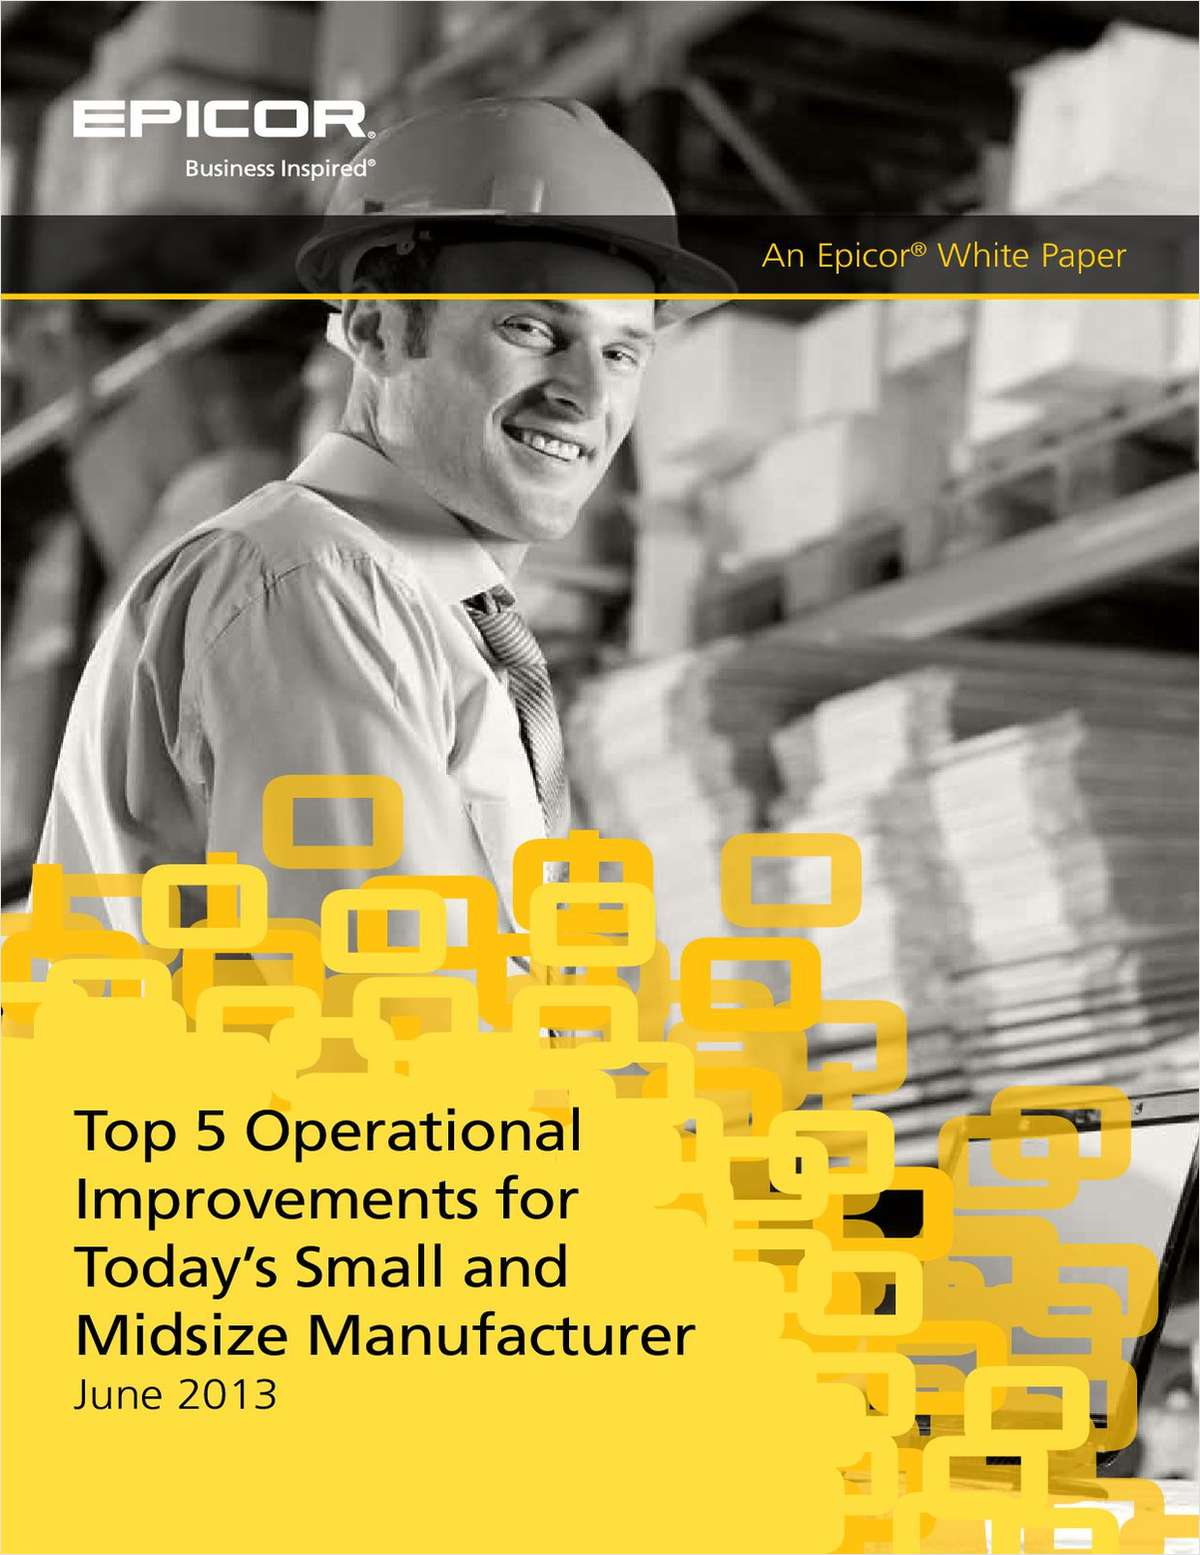 Top 5 Operational Improvements for Today's Small and Midsize Manufacturer